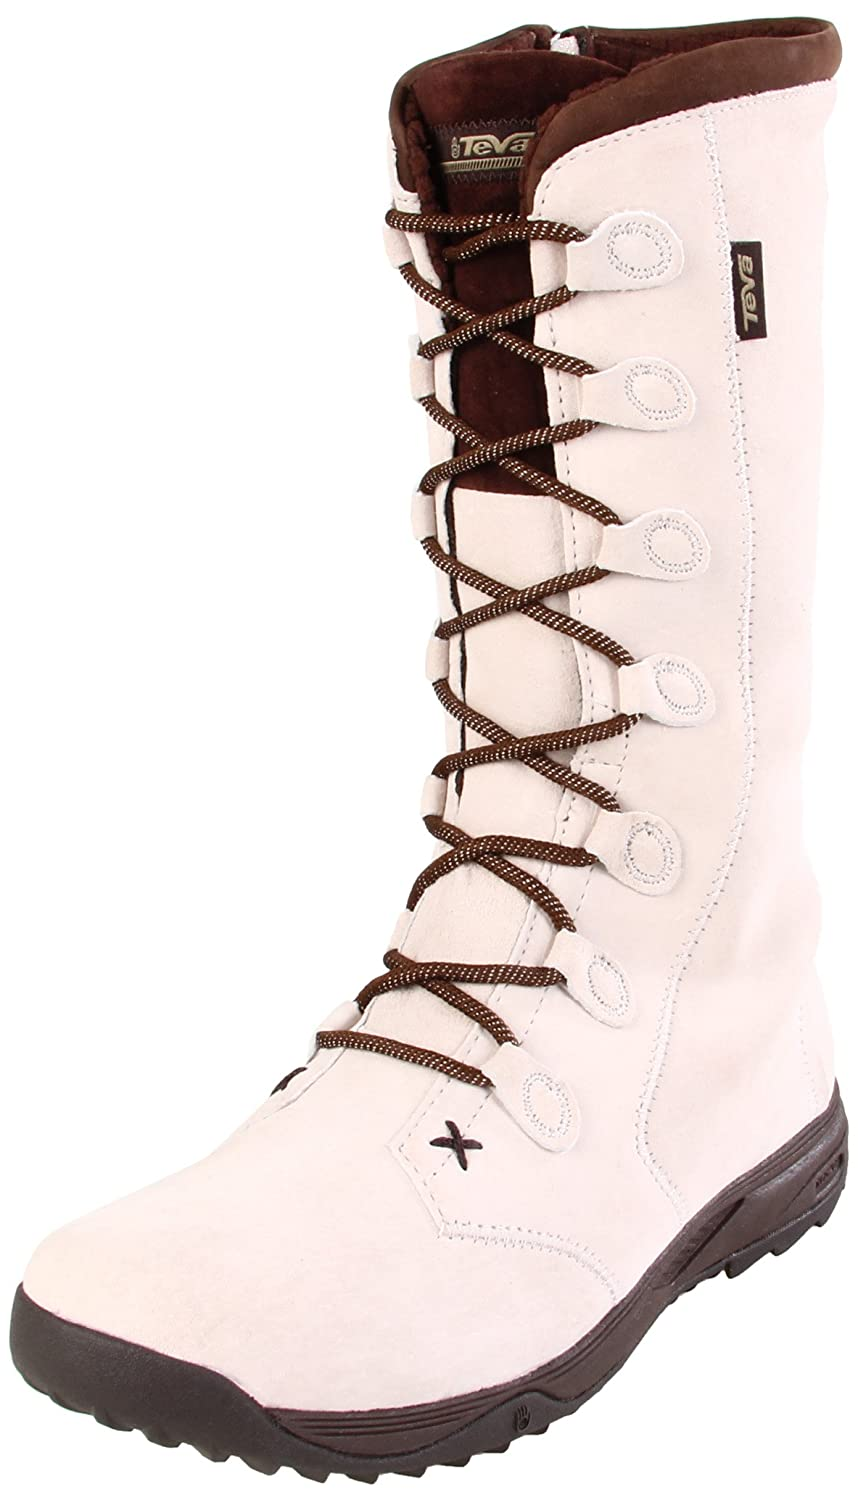 pretty cool outlet on sale 100% quality Amazon.com | Teva Women's Vero Waterproof Insulated Boot ...